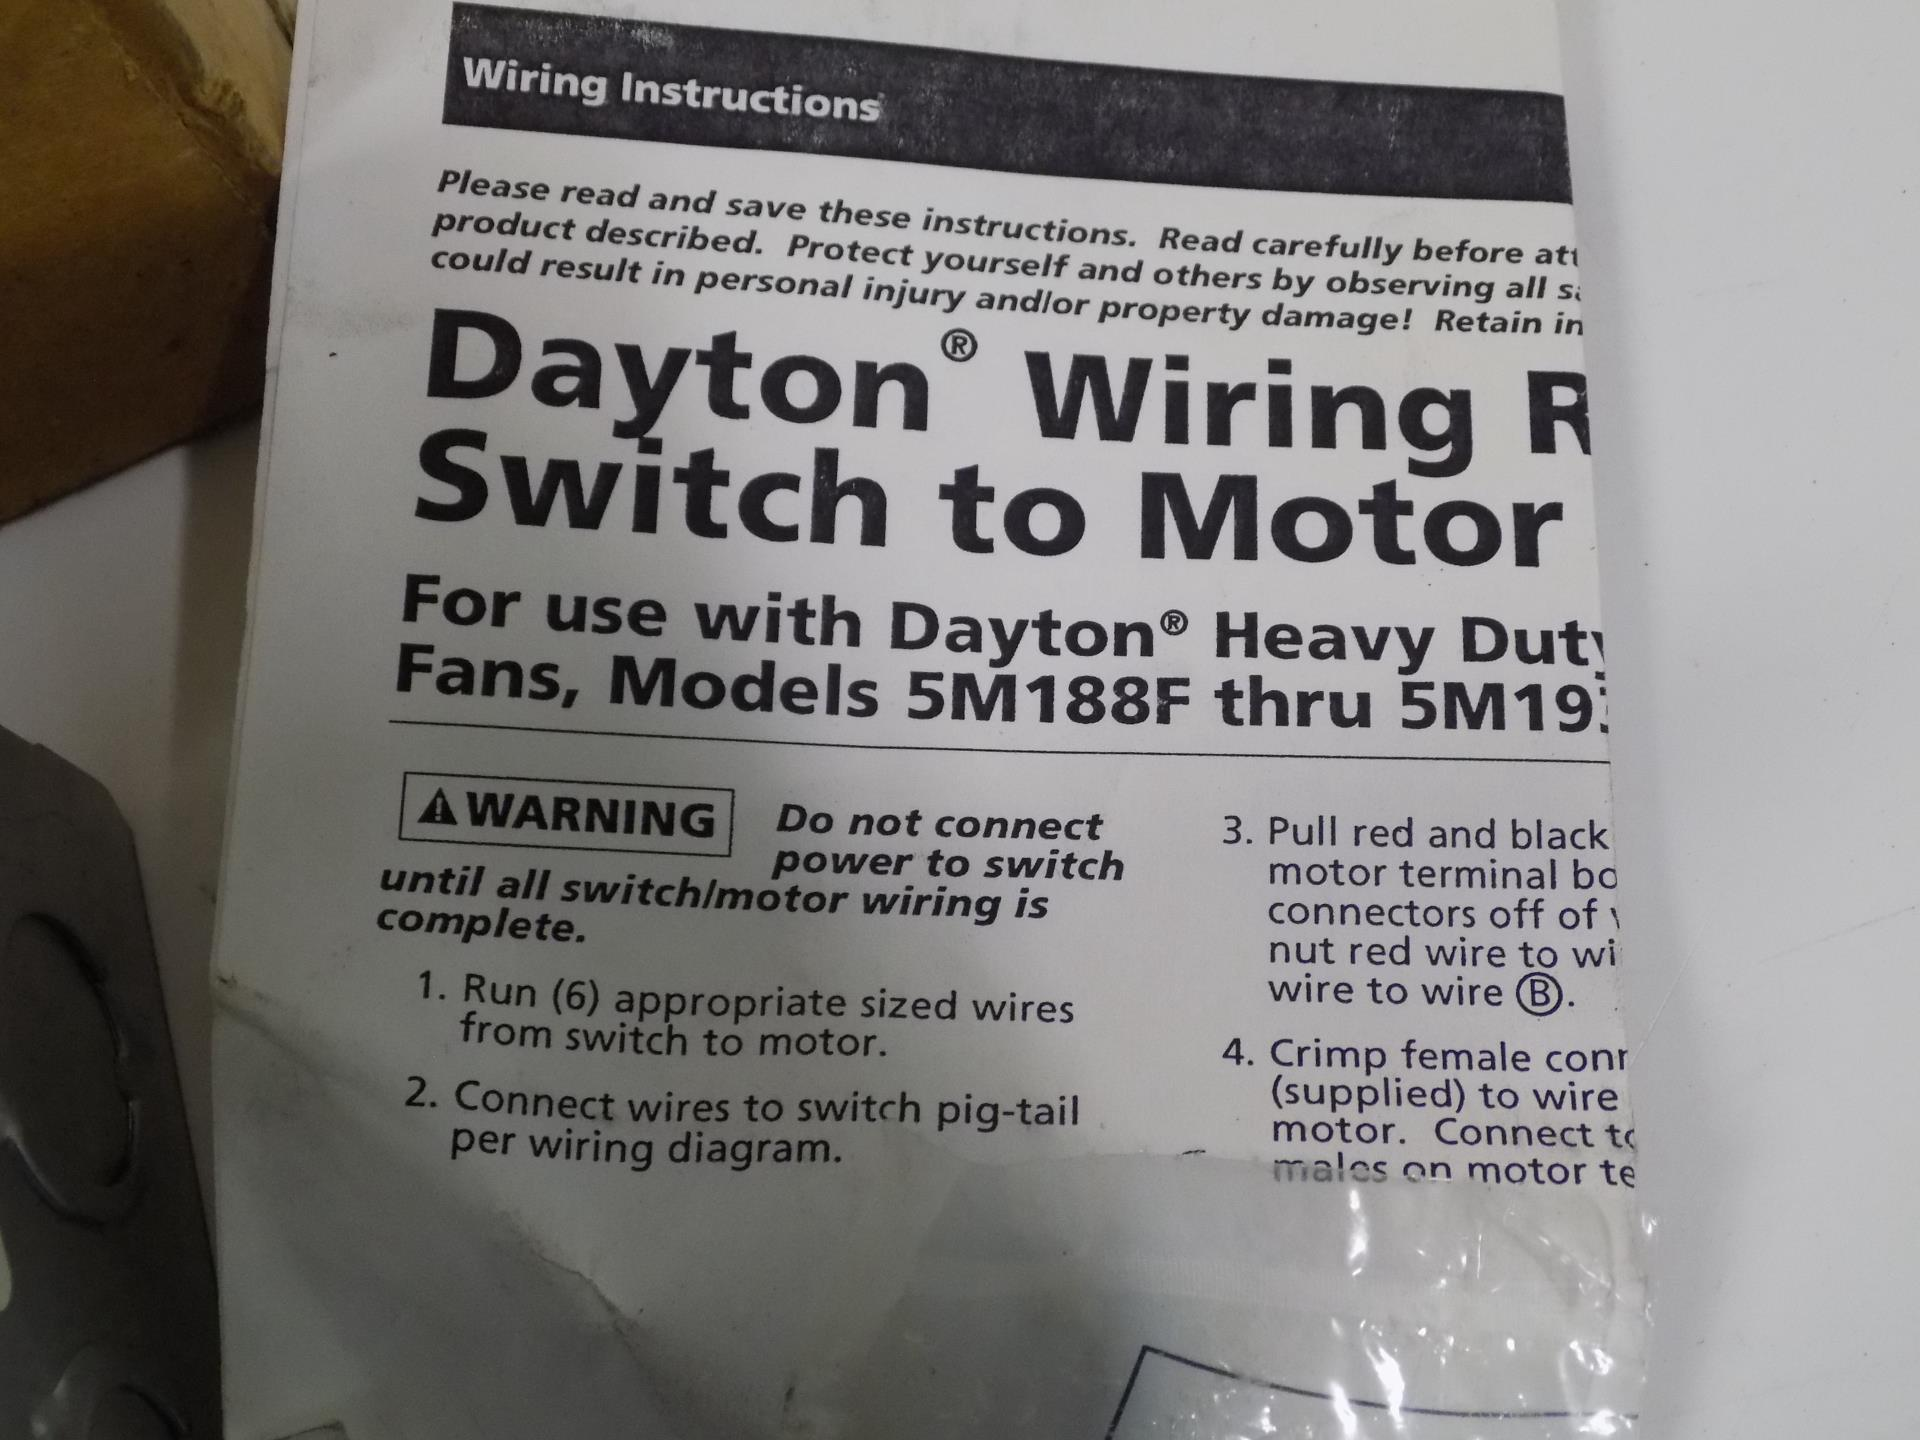 Dayton Reversible Motor Wiring Diagram. Dayton Split Phase ... on